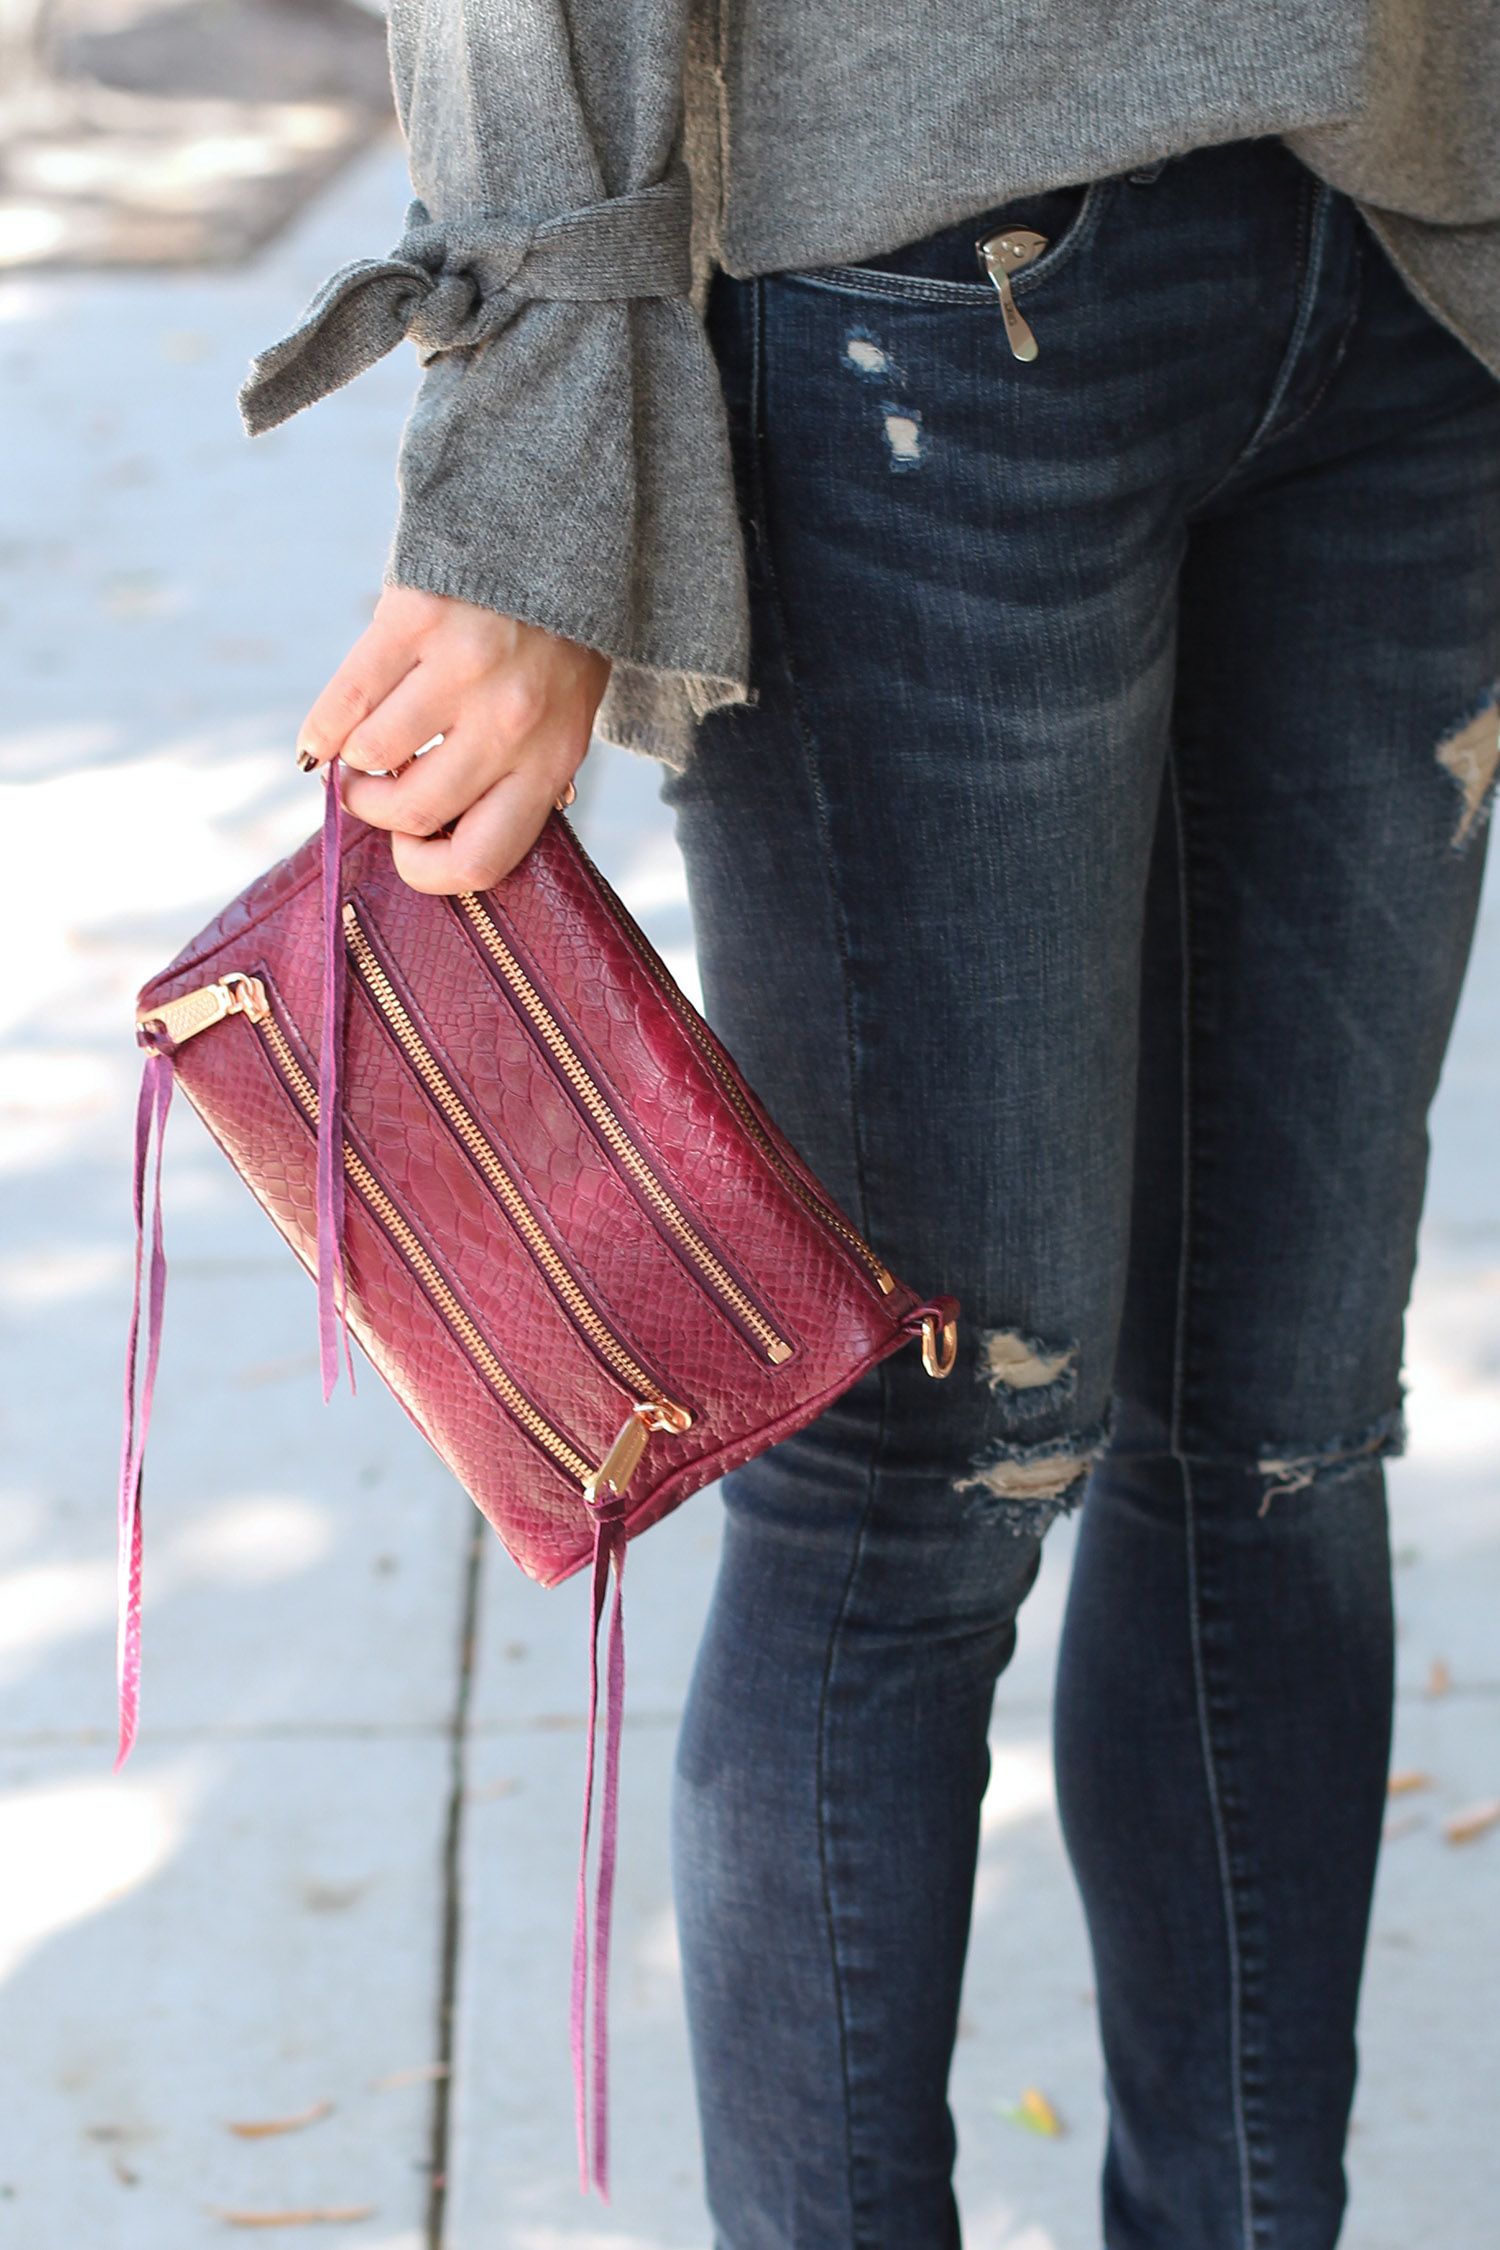 Rebecca Minkoff Bag, Date Night Outfit